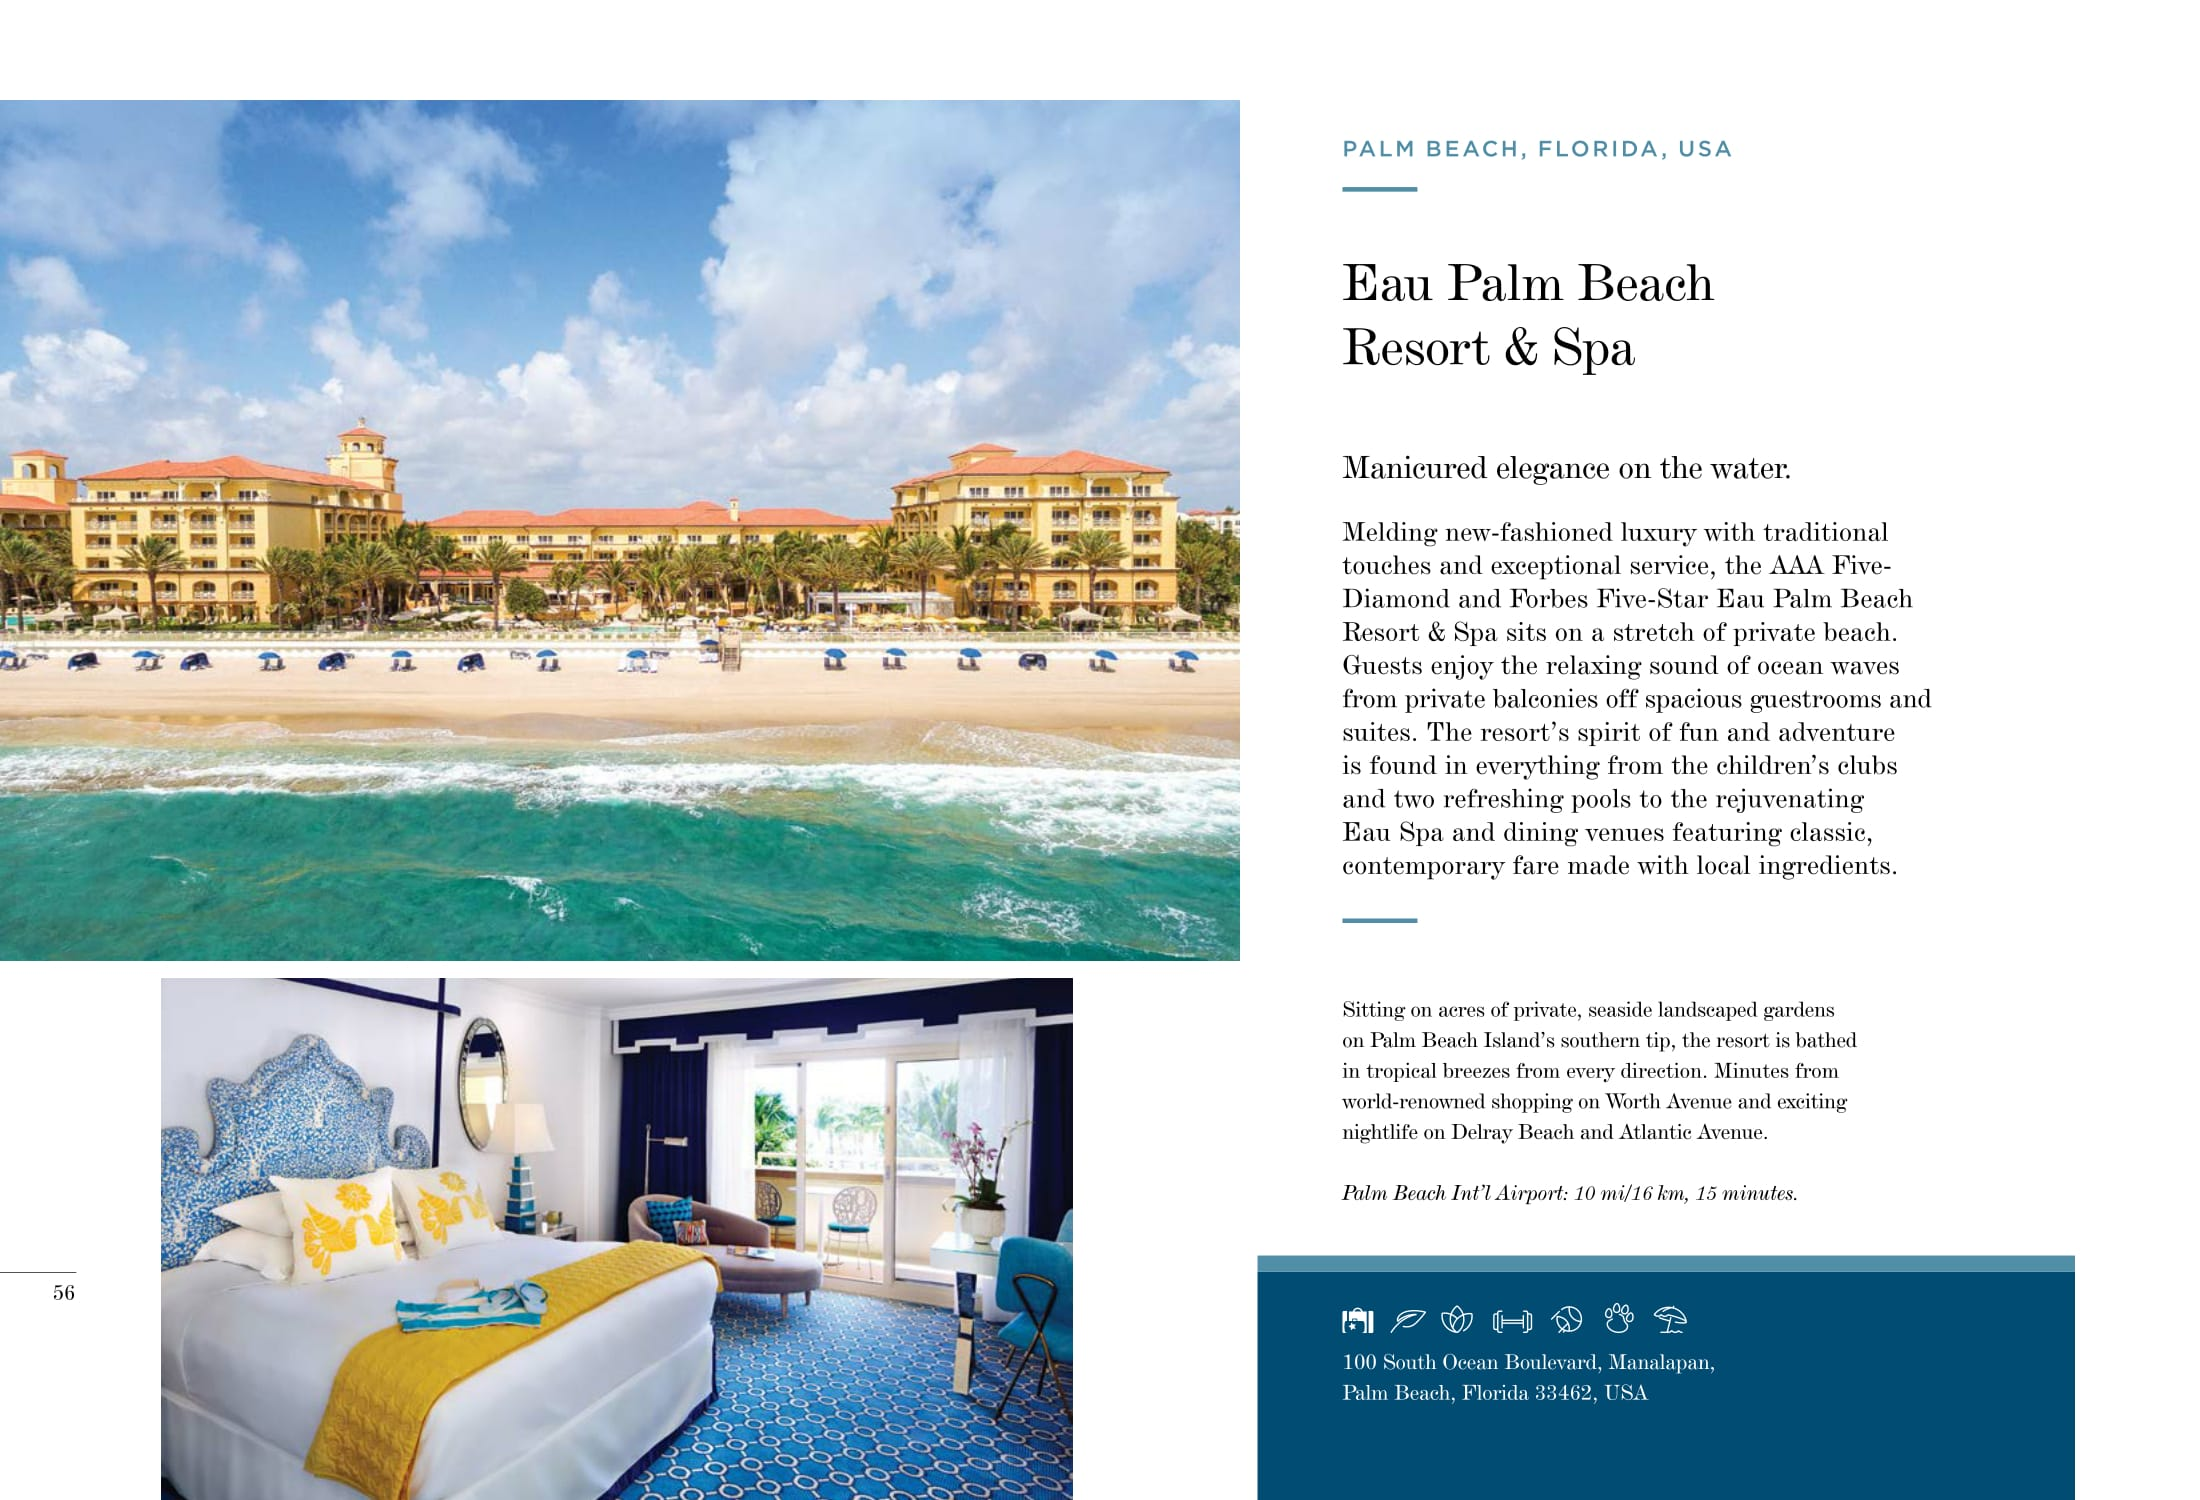 Eau Palm Beach Resort & Spa, Florida, USA